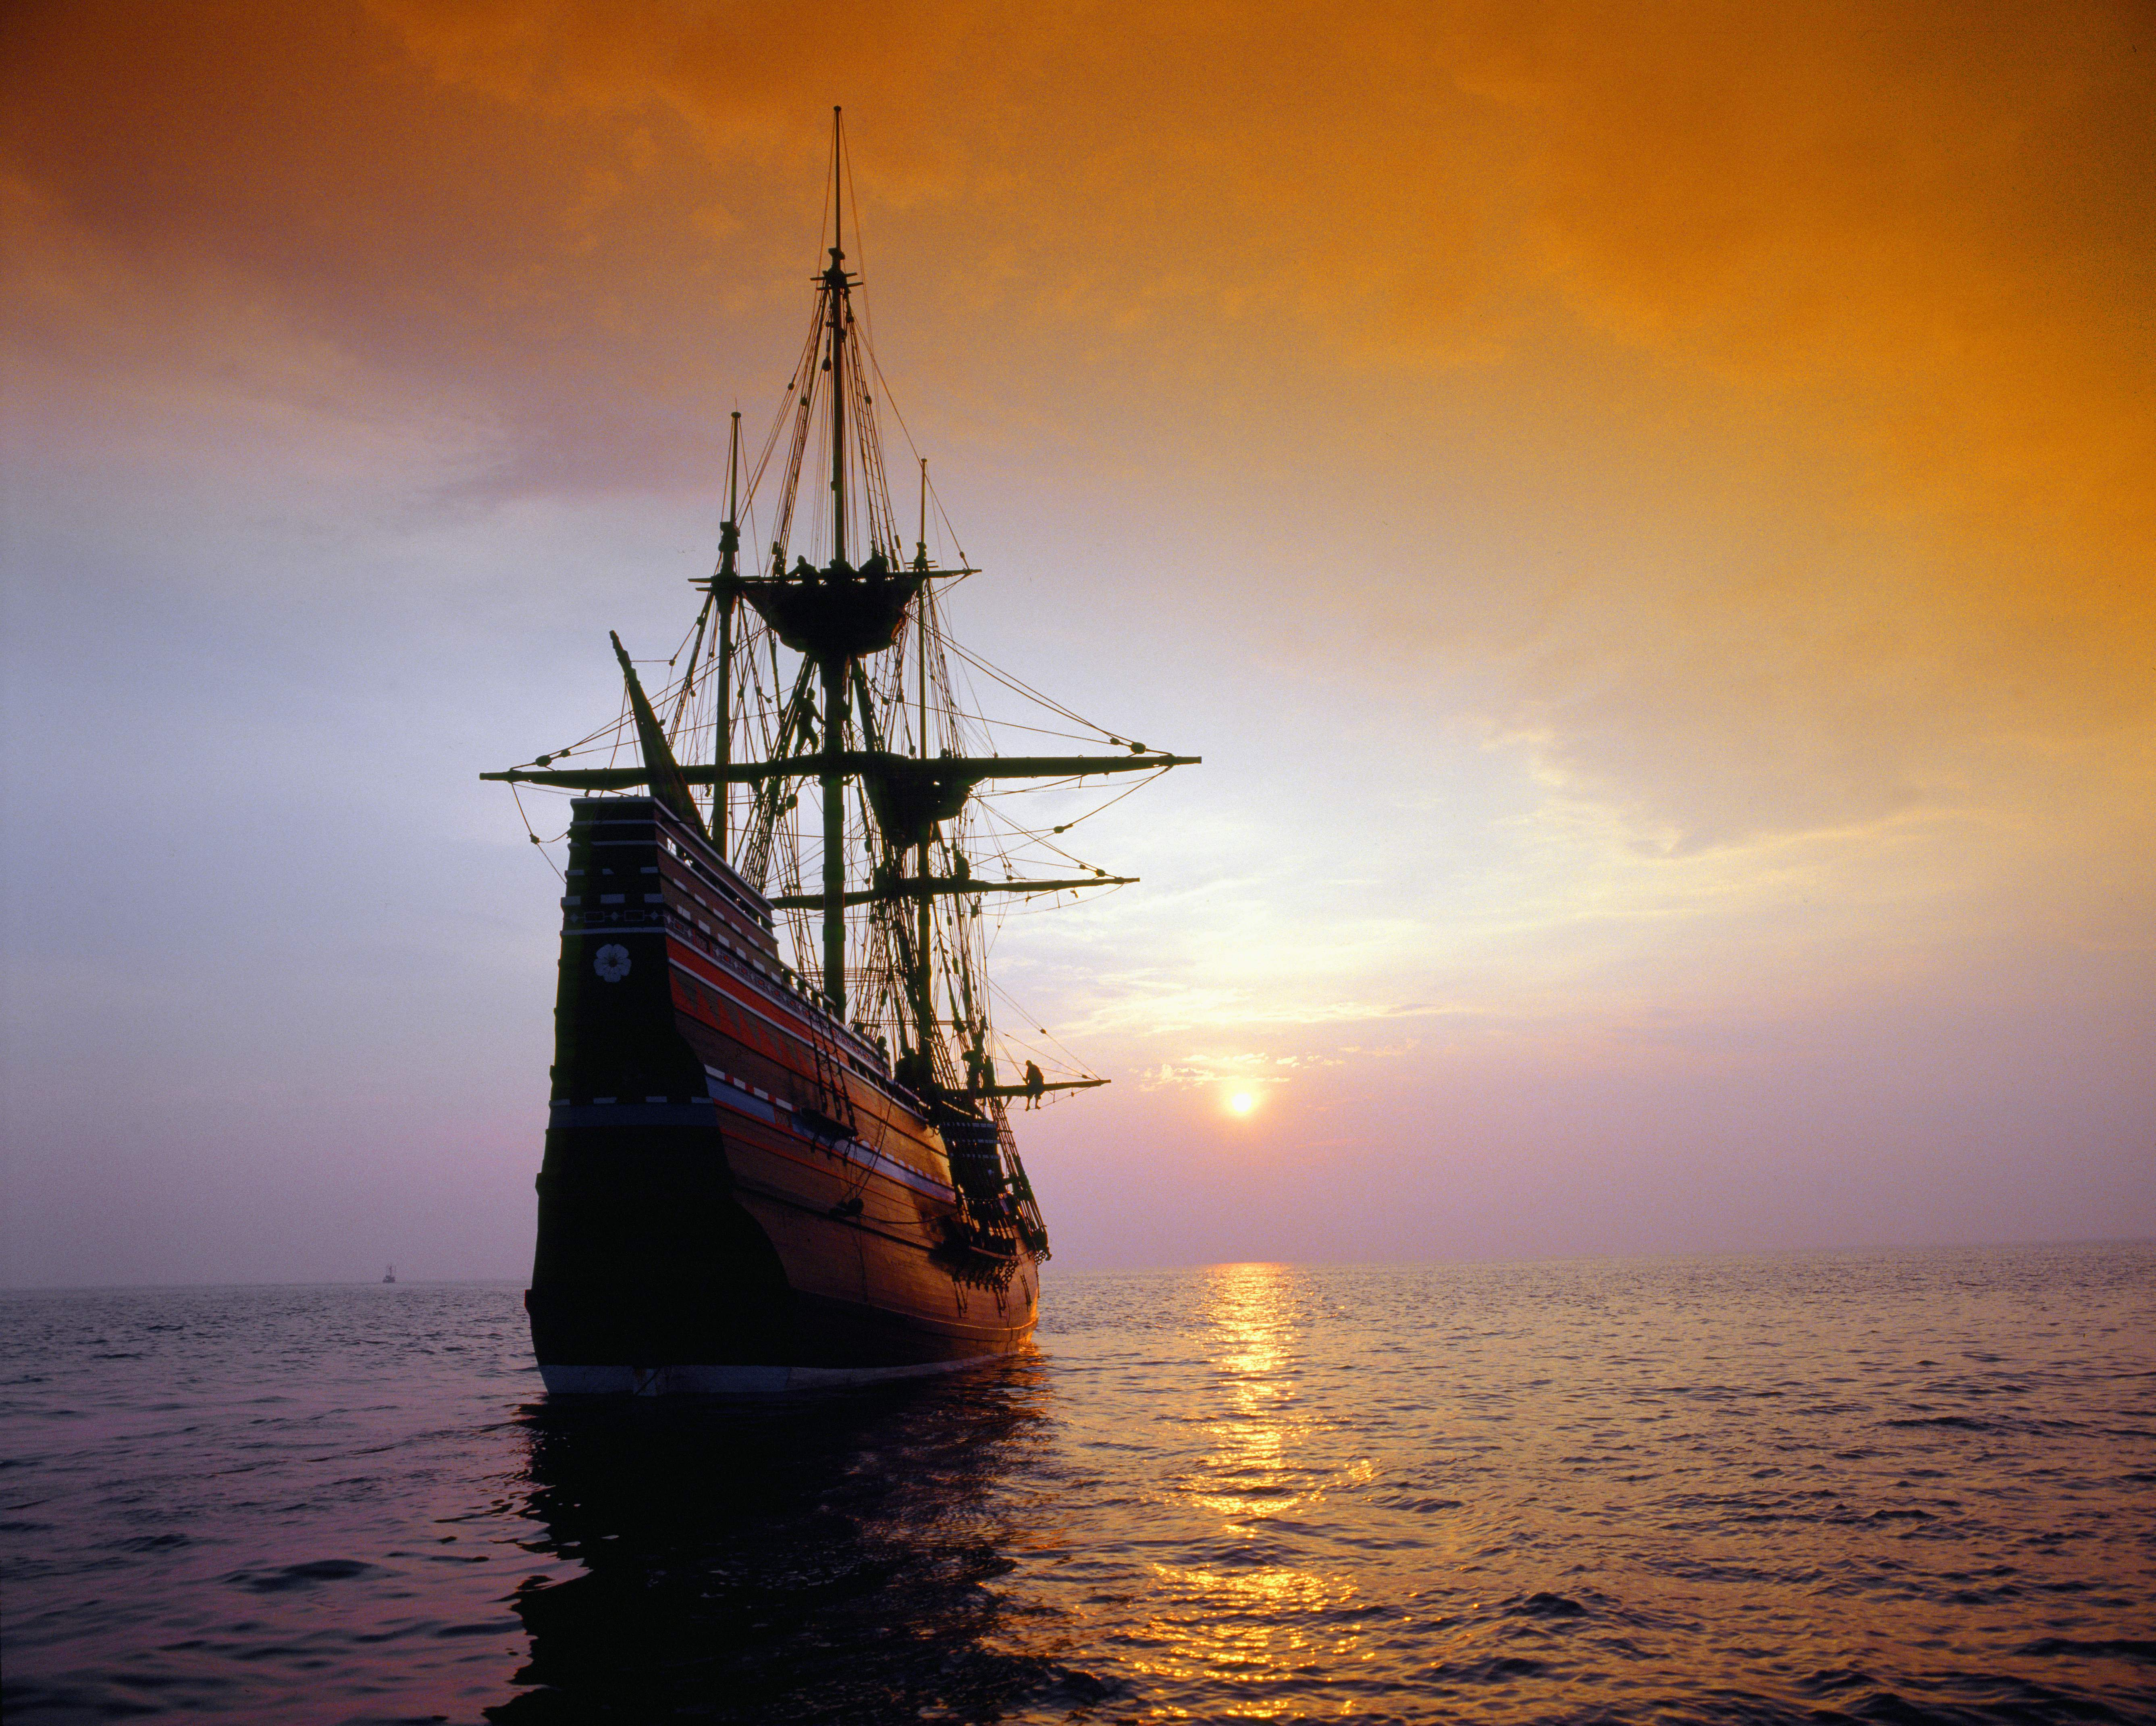 The Mayflower II replica at sunset in Massachusetts. A copy of the New Testament that came over on the Mayflower in the 1600s is one of more than a dozen historical items on exhibit at the Liberty Hills Academy open house on May 17, 2019.